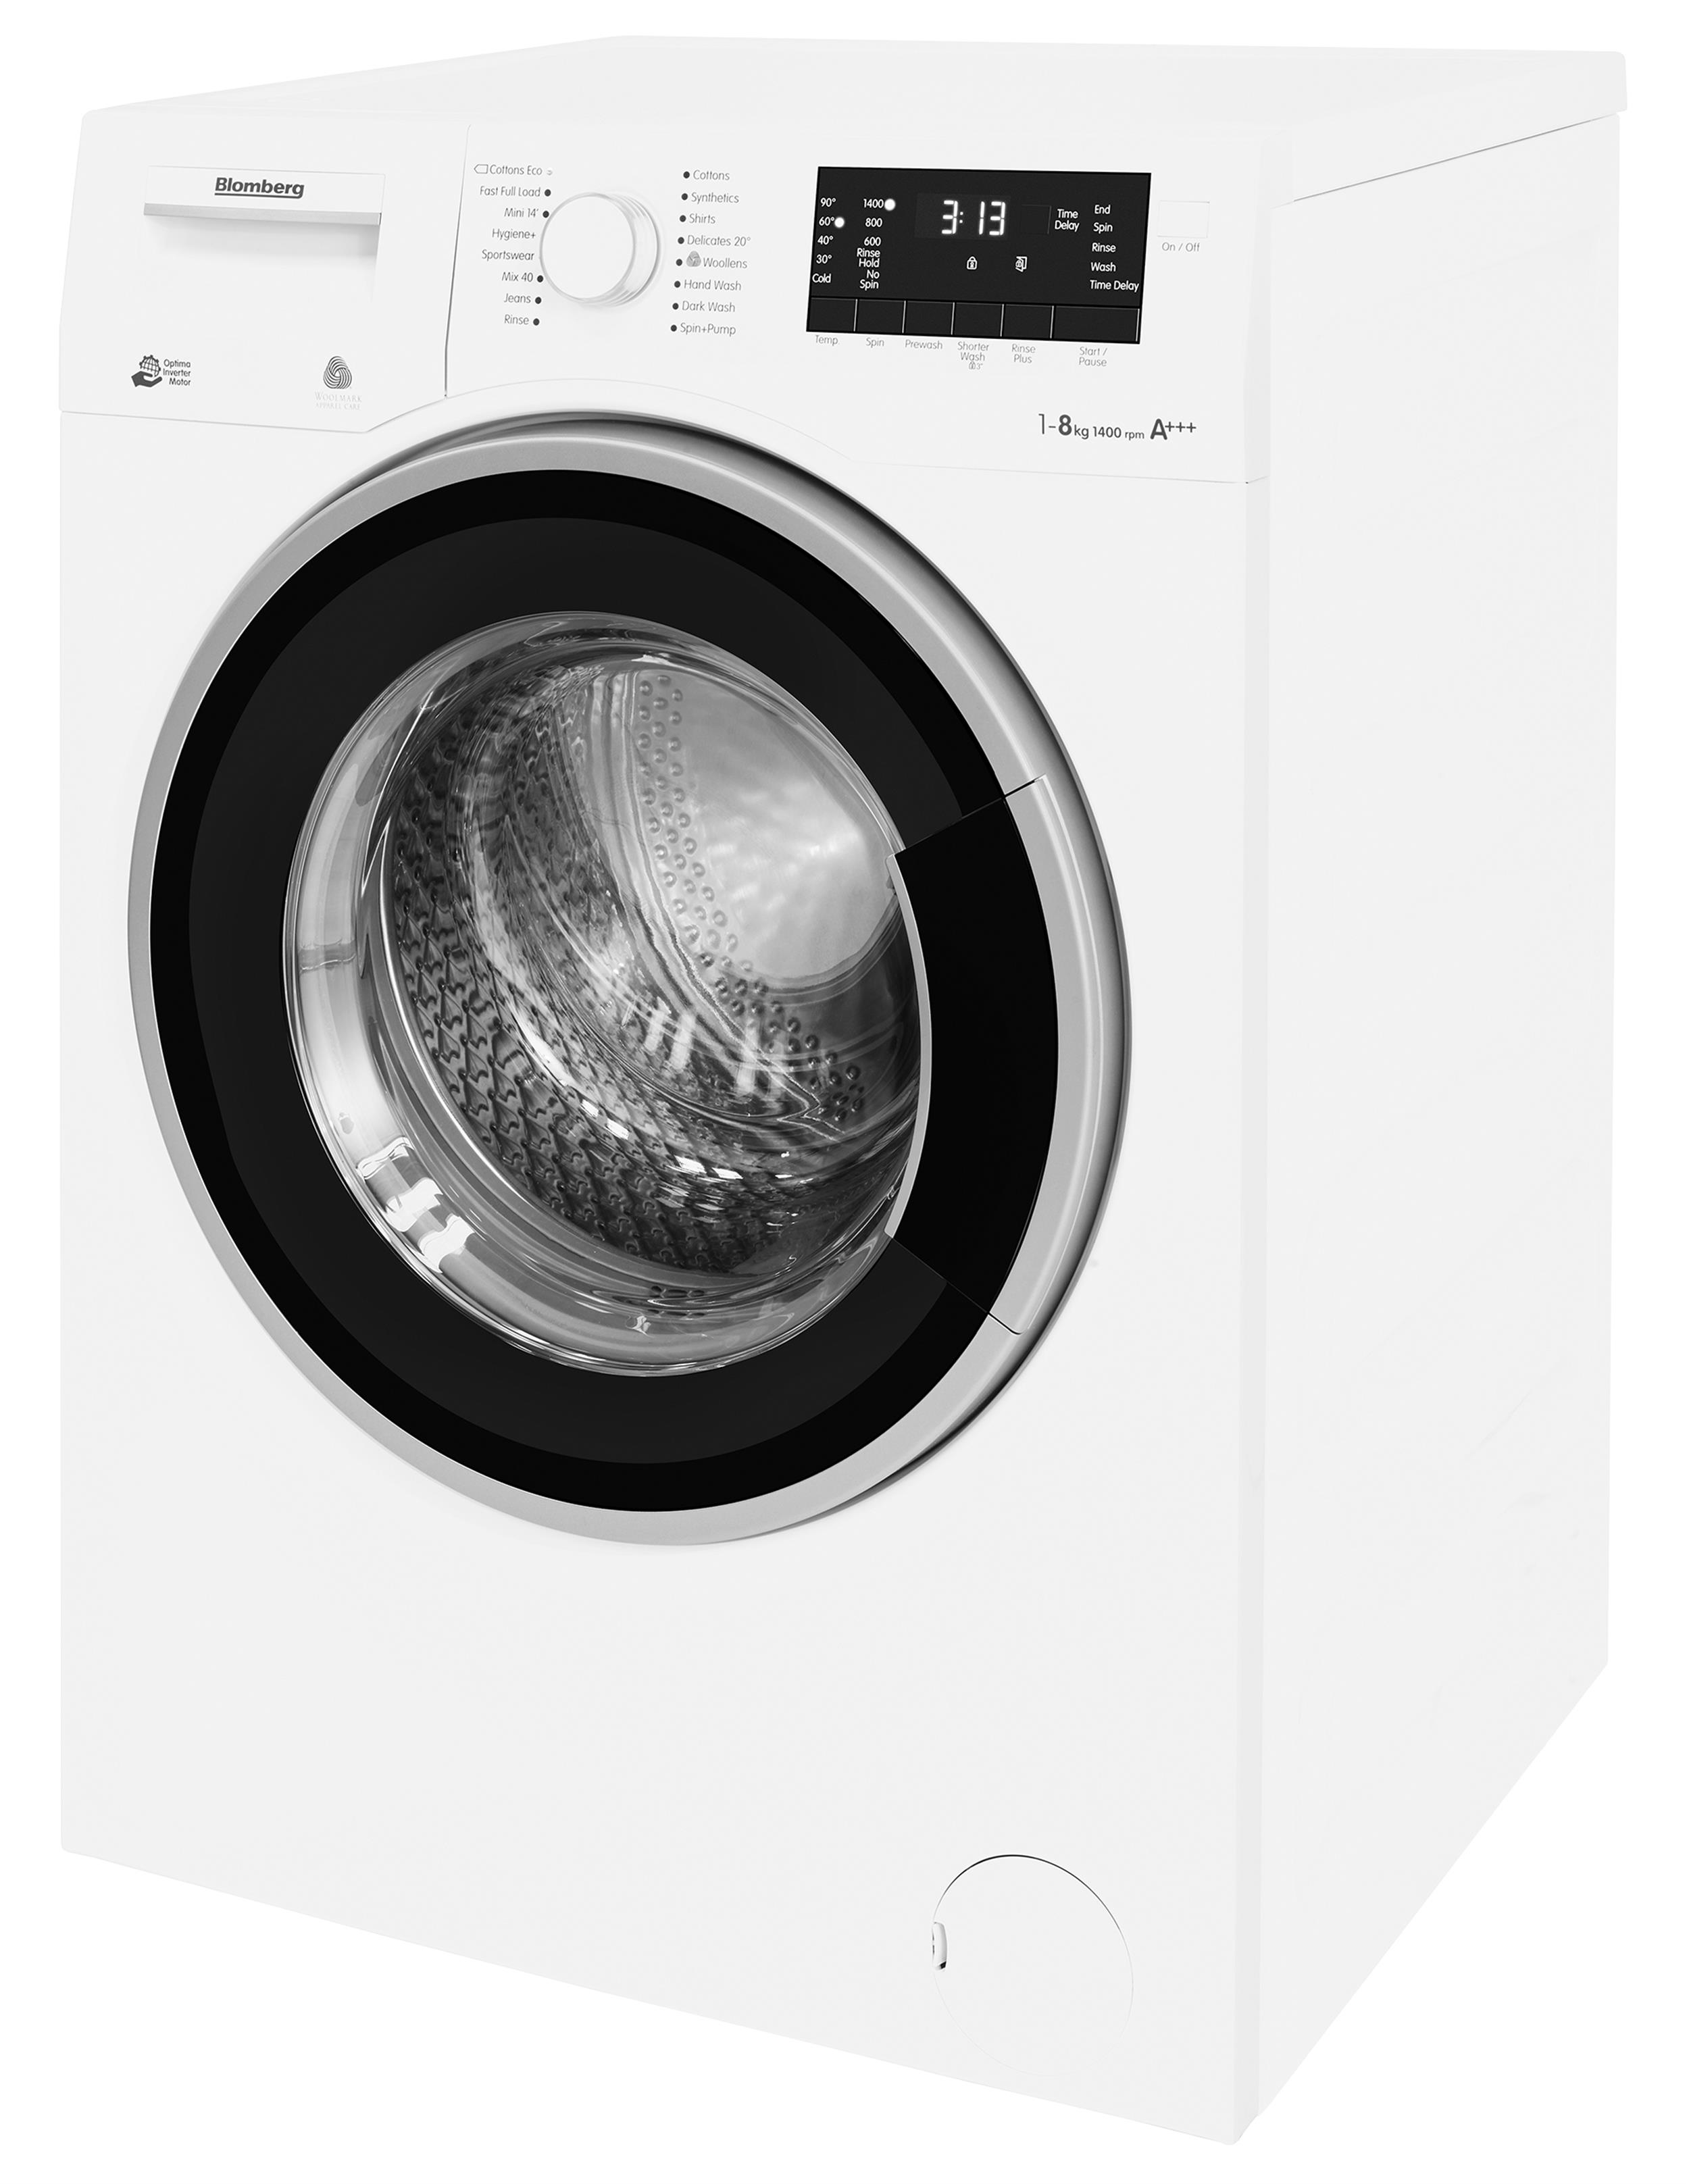 Ge Front Load Washer Diagram Electrical Wiring Diagrams Loader Washing Machine Blomberg For Light Switch U2022 Parts List